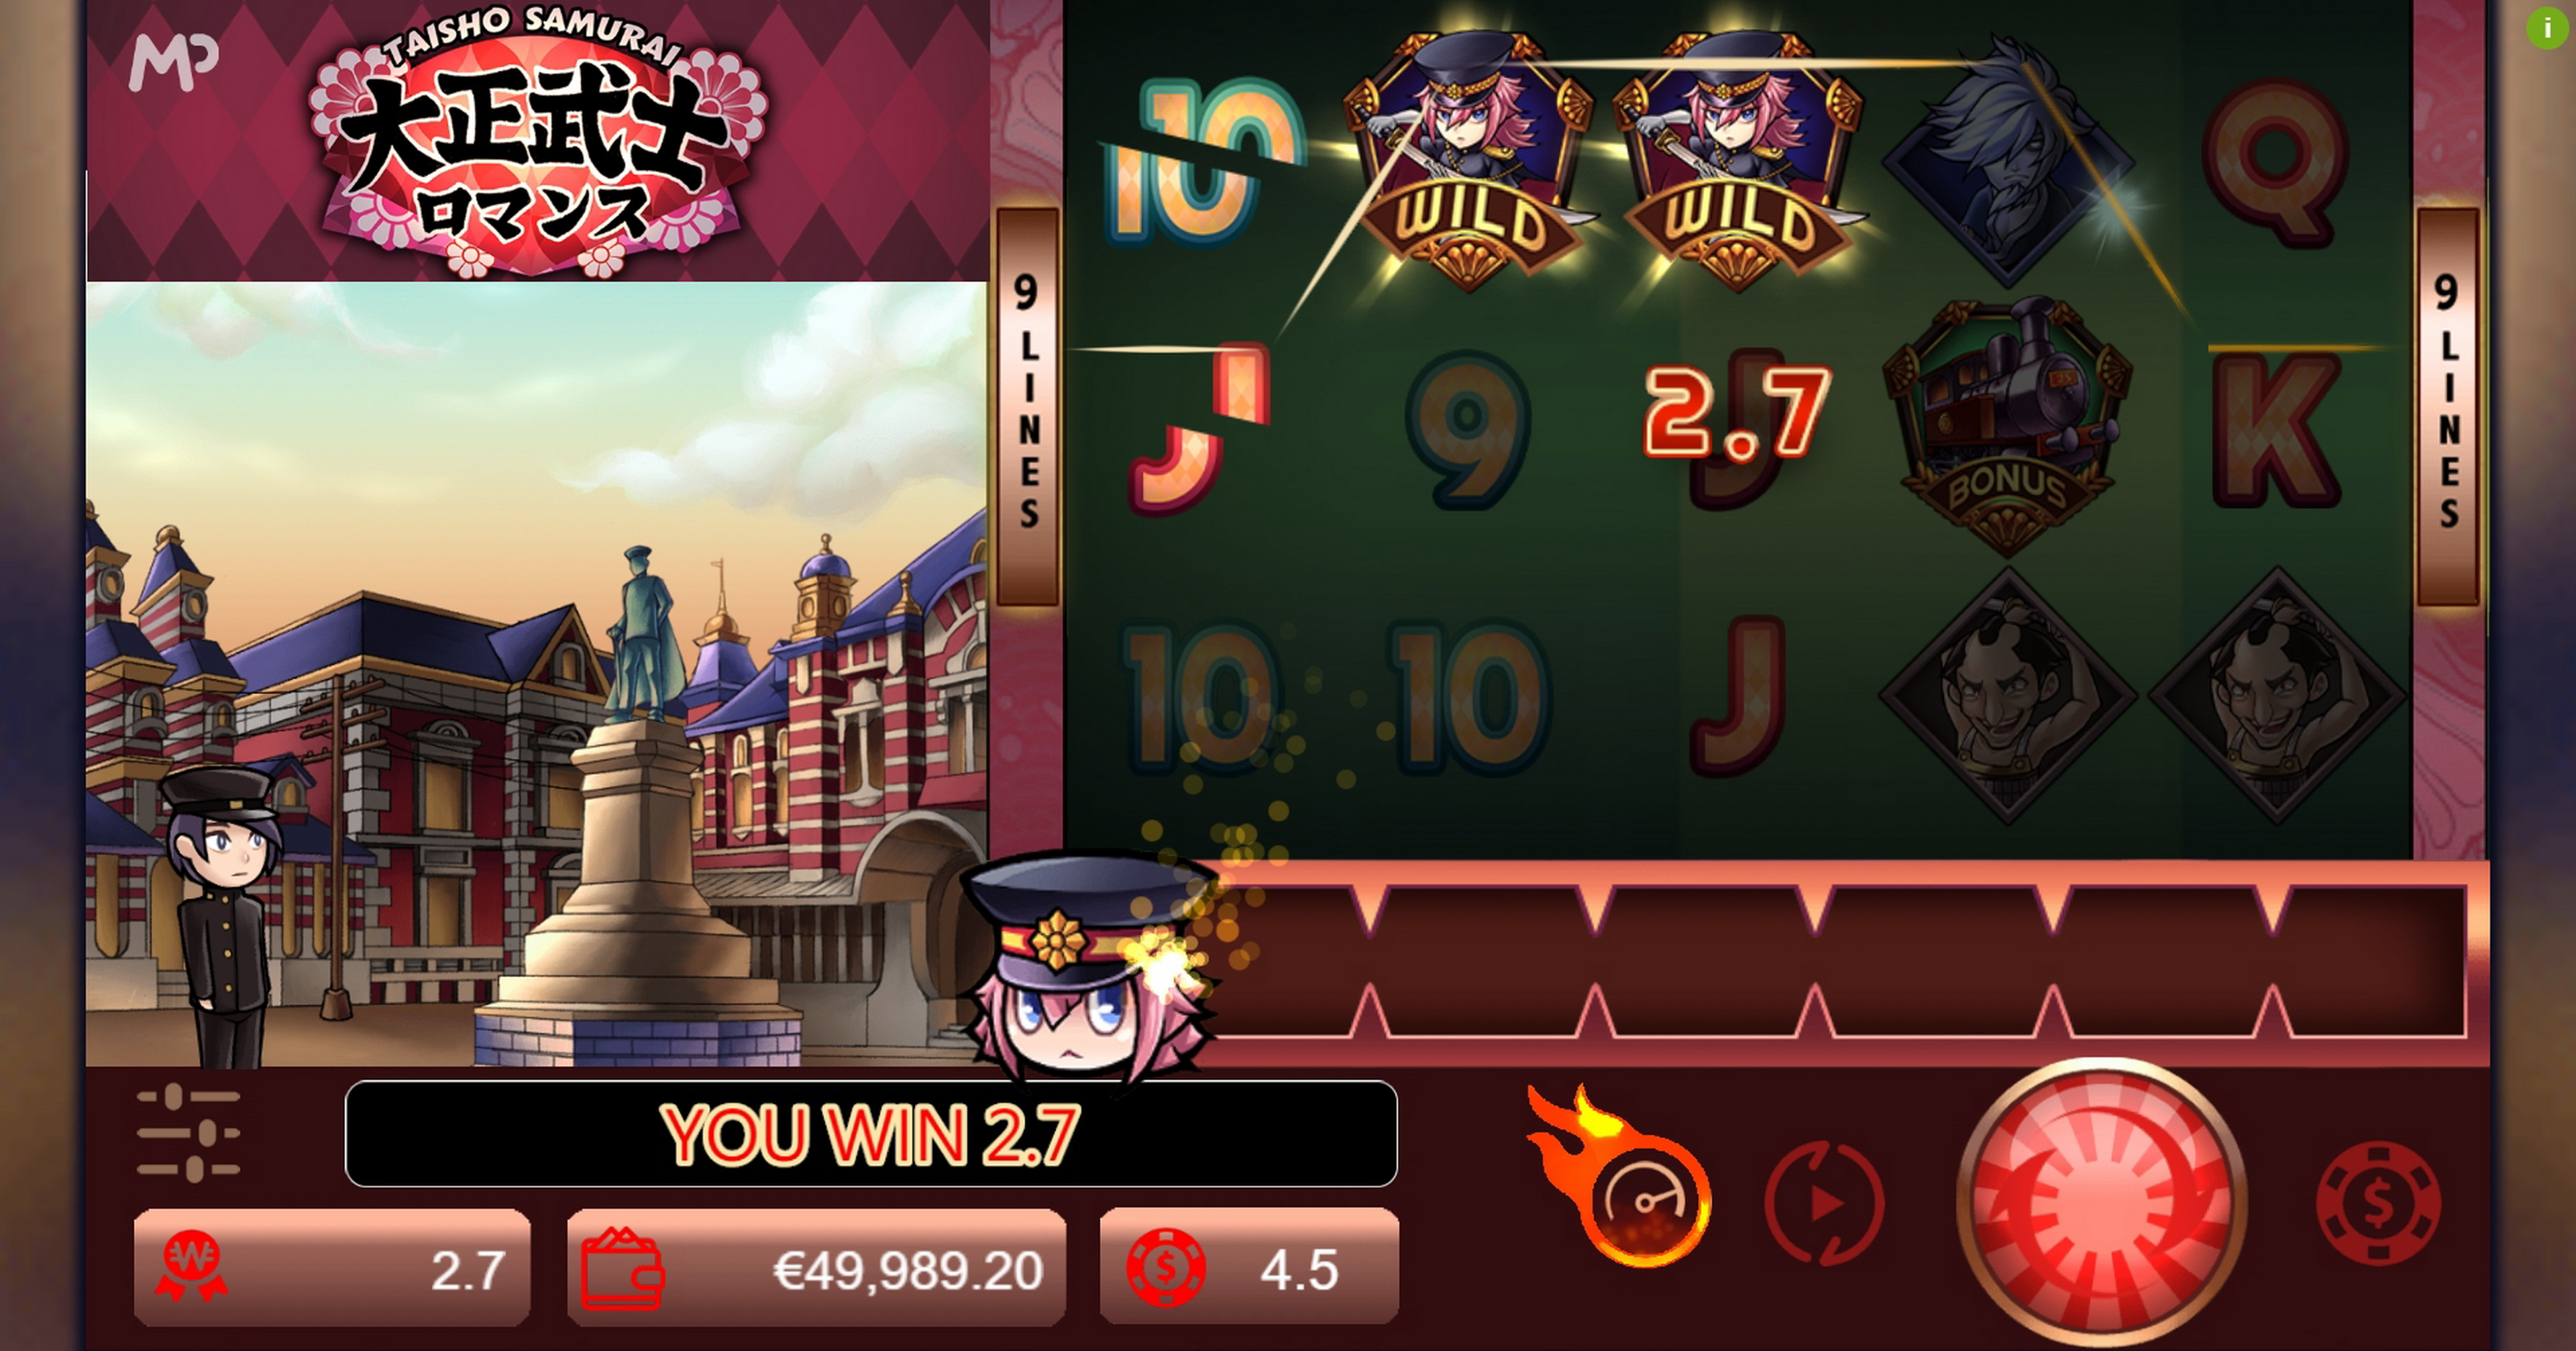 Win Money in Taisho Samurai Free Slot Game by Manna Play